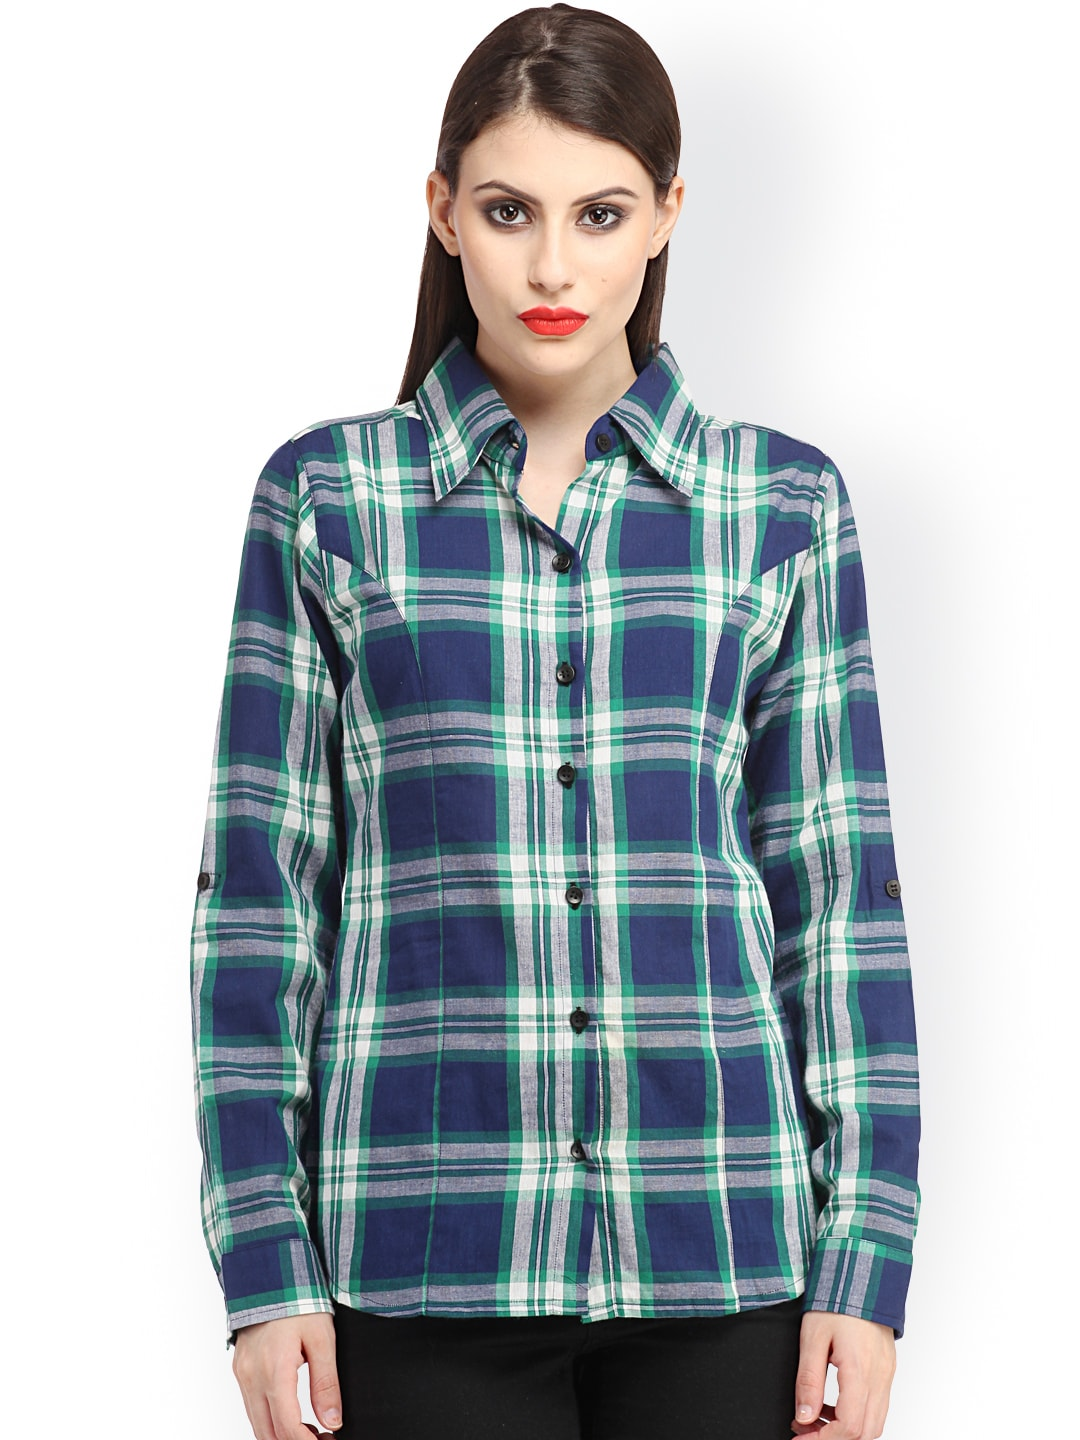 Cation Blue & Green Checked Slim Fit Casual Shirt